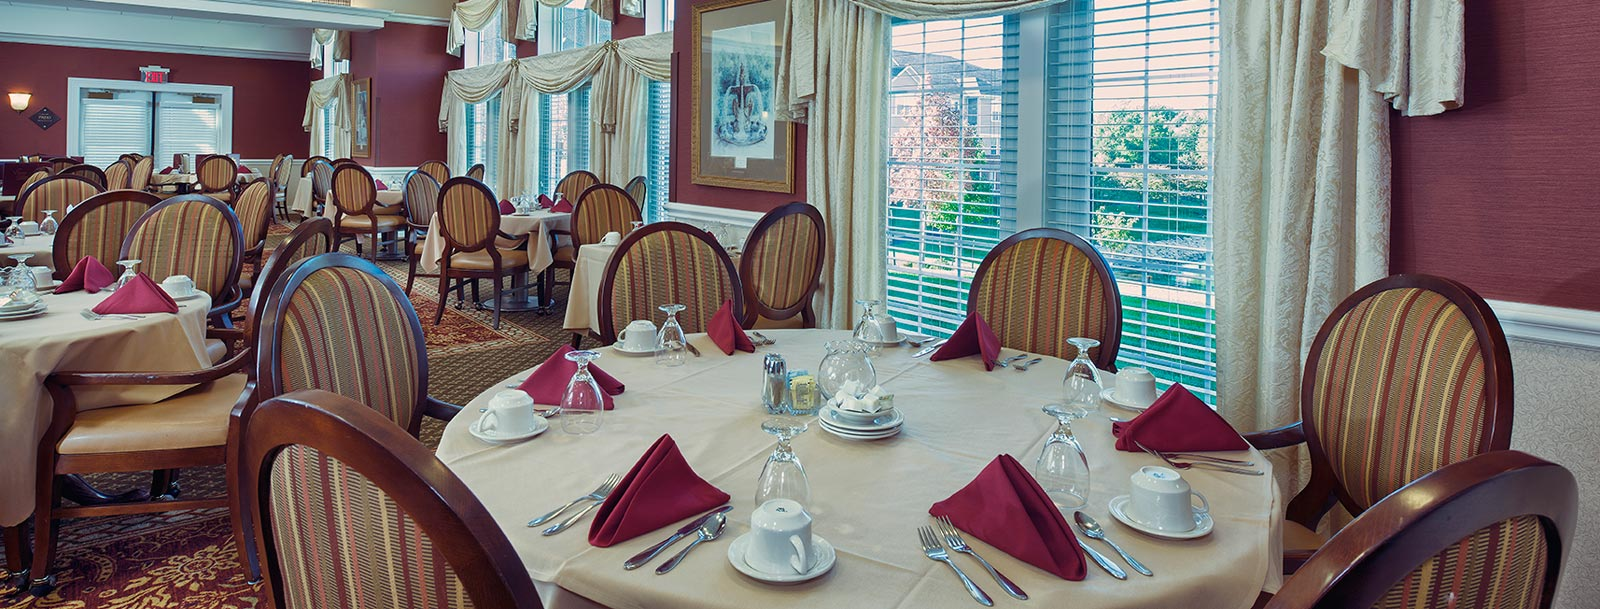 Professional chefs to prepare your meals at the senior living facility in Olathe